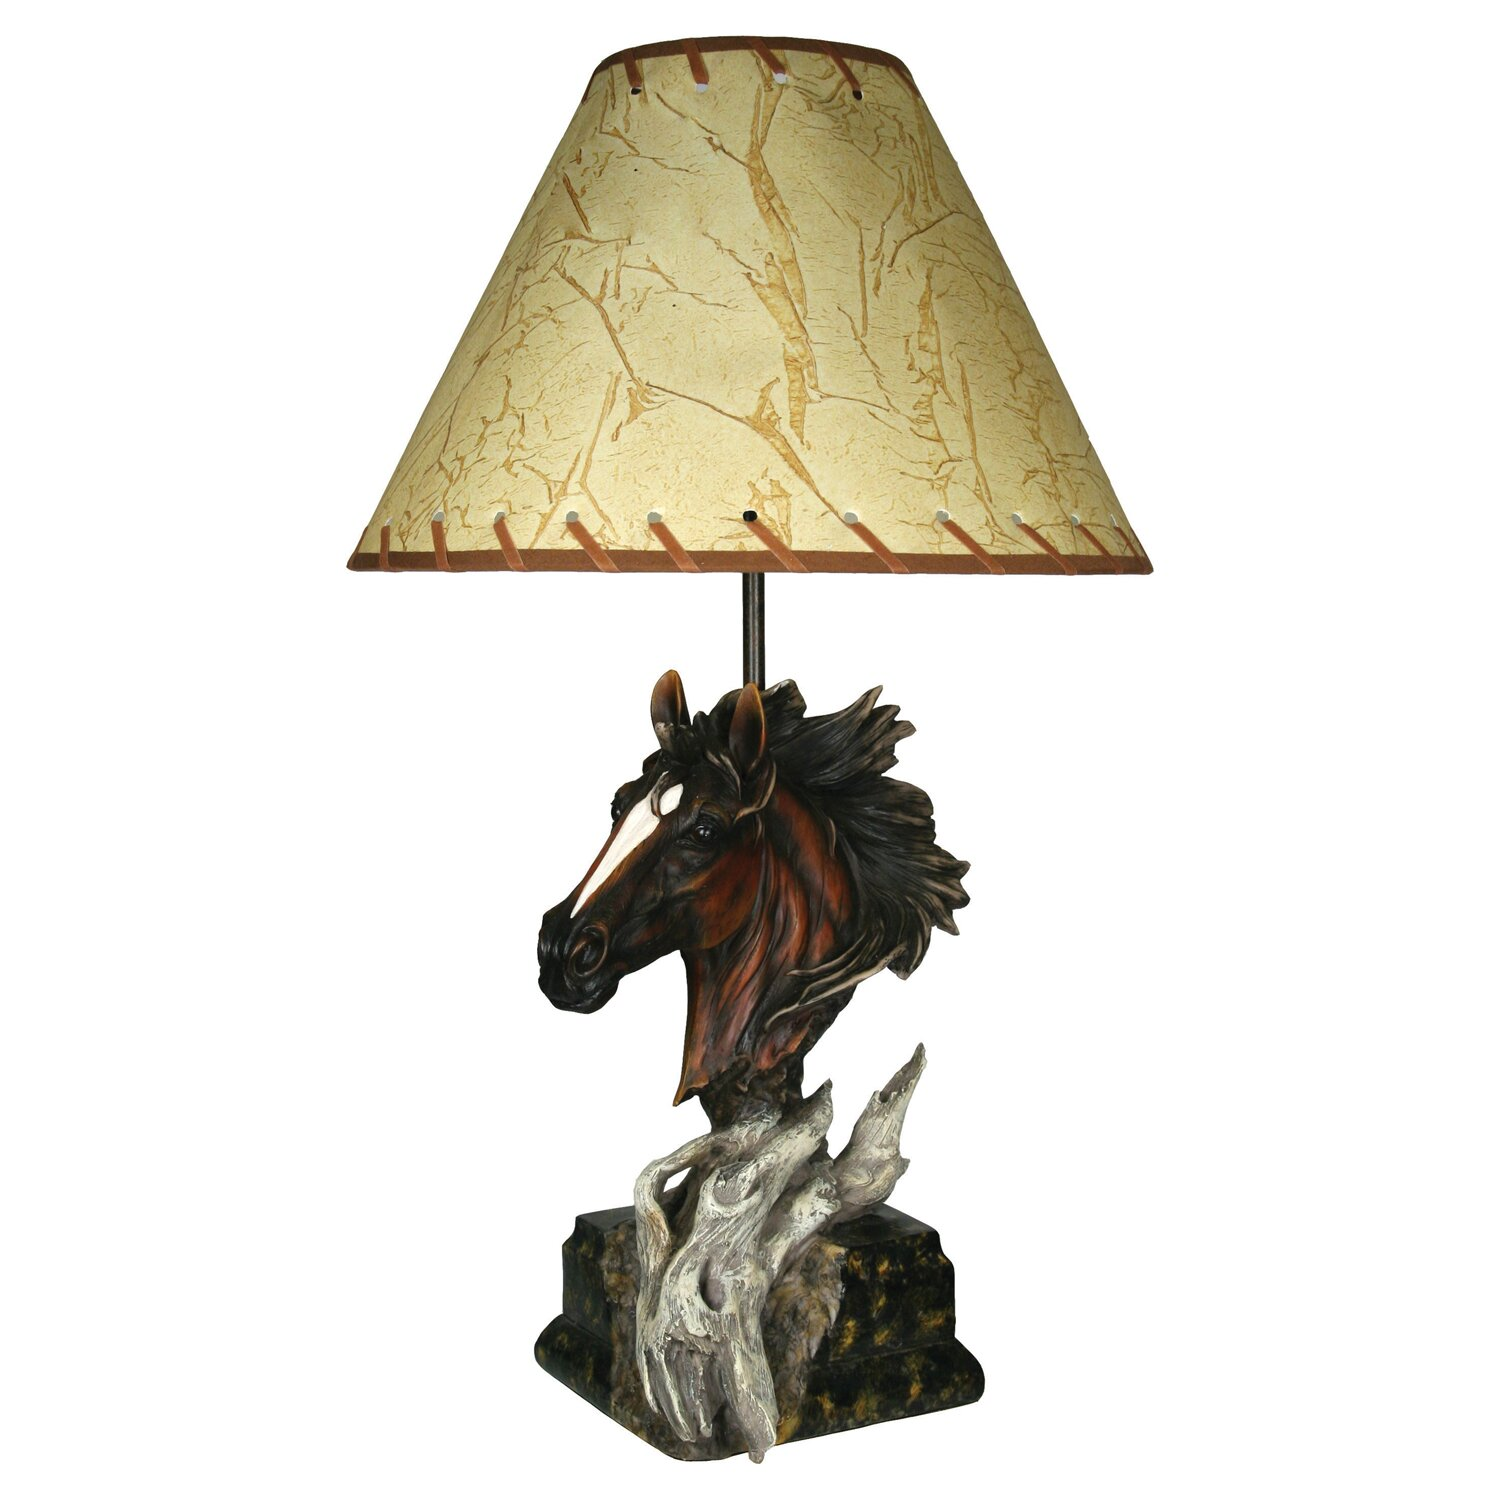 river 39 s edge products horse 23 table lamp reviews wayfair. Black Bedroom Furniture Sets. Home Design Ideas